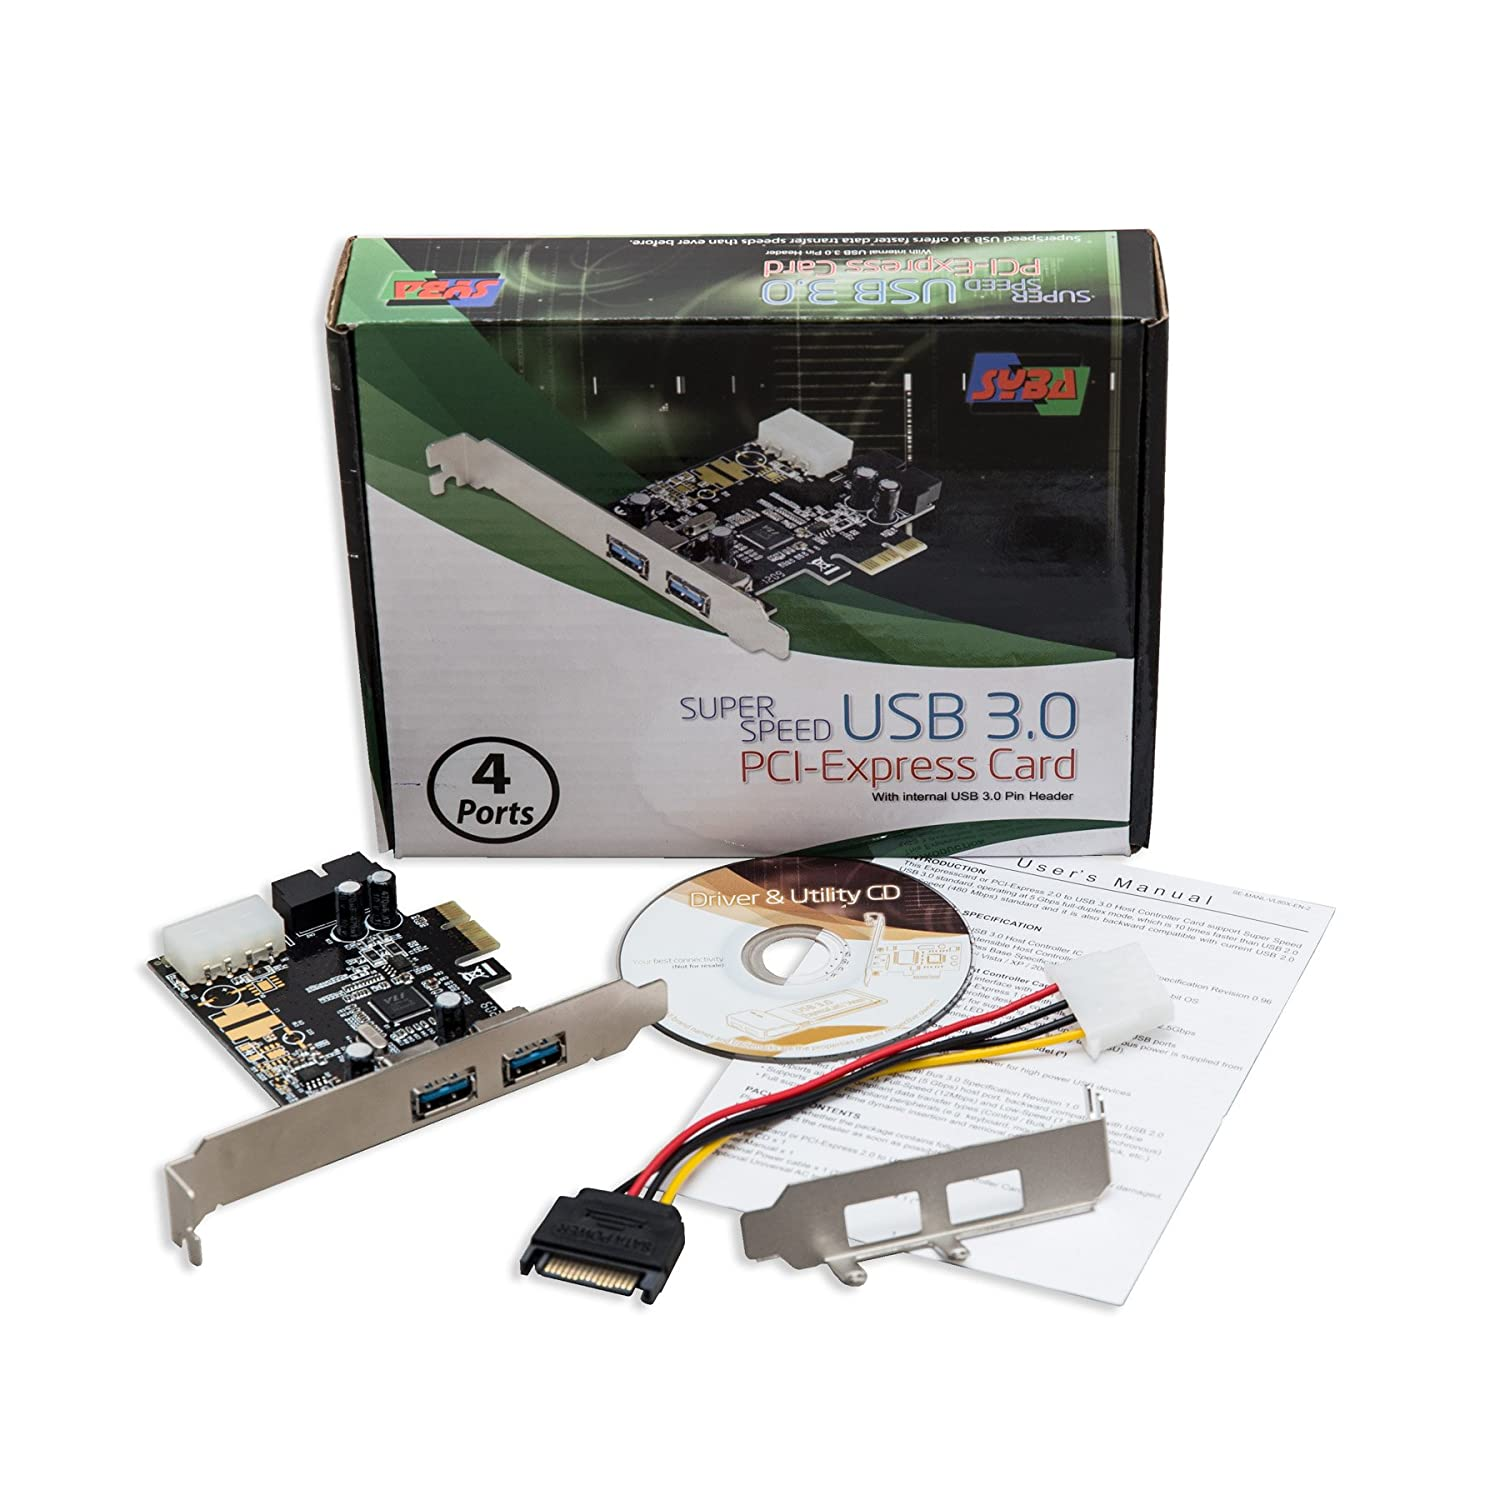 2 External USB 3.0 Type A Ports Syba USB 3.0 PCI-E x1 Adapter Card Requires SATA Power SD-PEX20160 Renesas Chipset